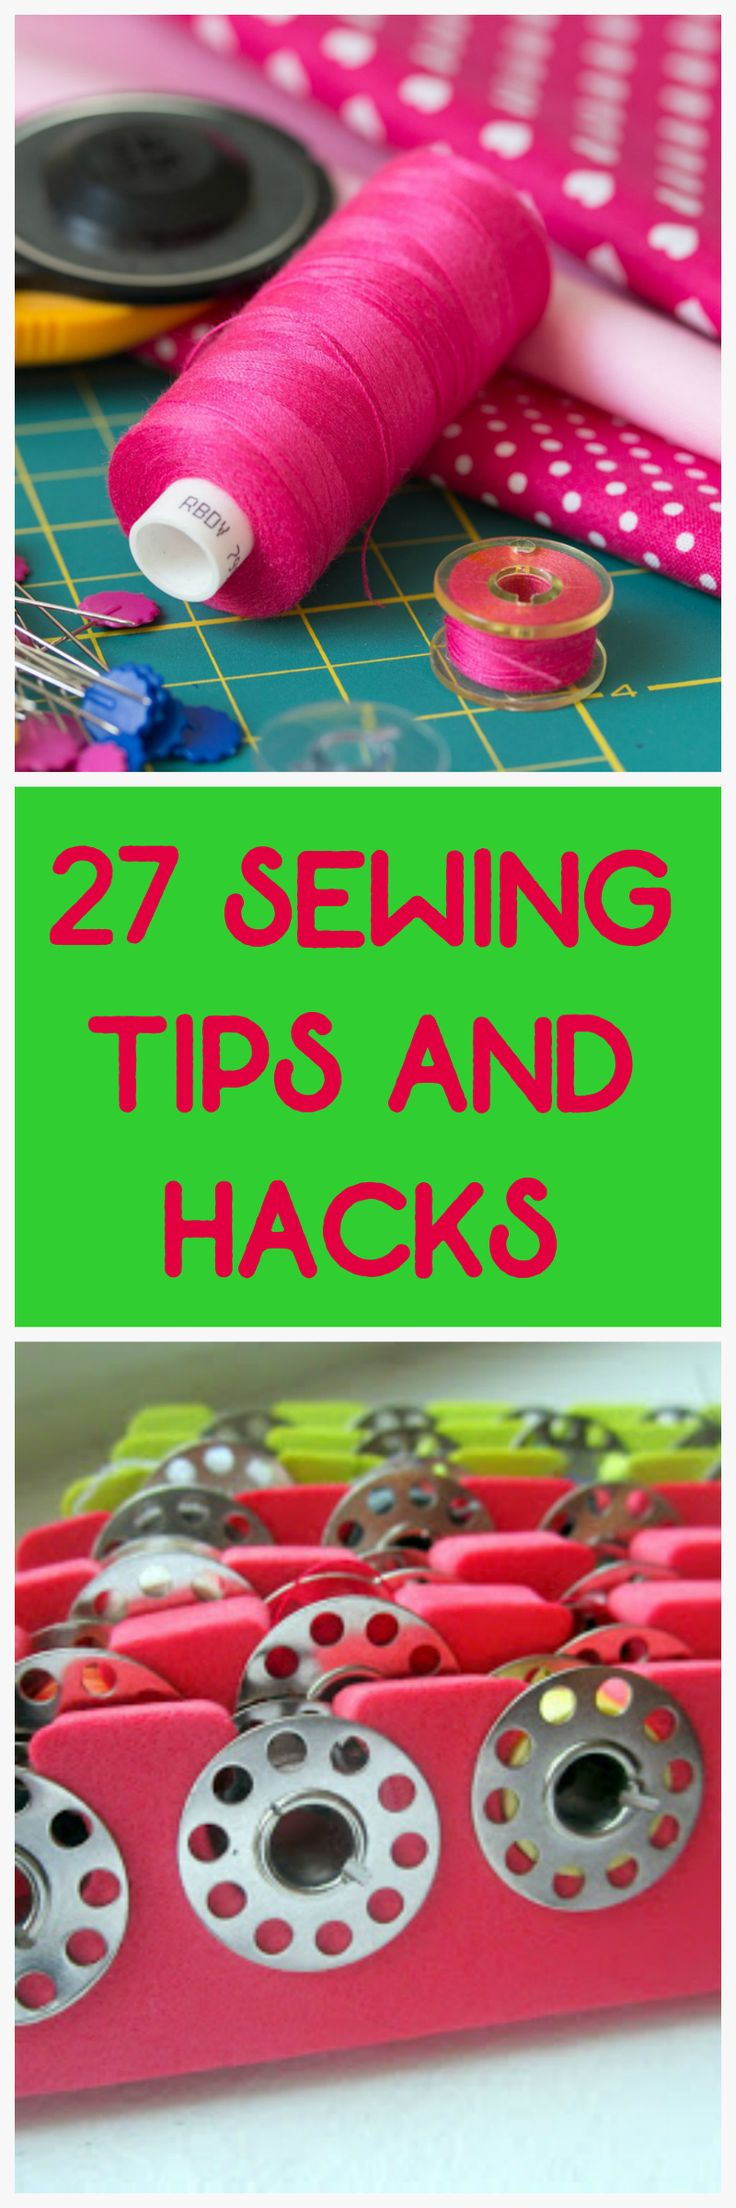 27 sewing hacks. Make the most of your sewing with these tips and tricks. #sewing #diy #crafts #thehybridchick #sewingmachine